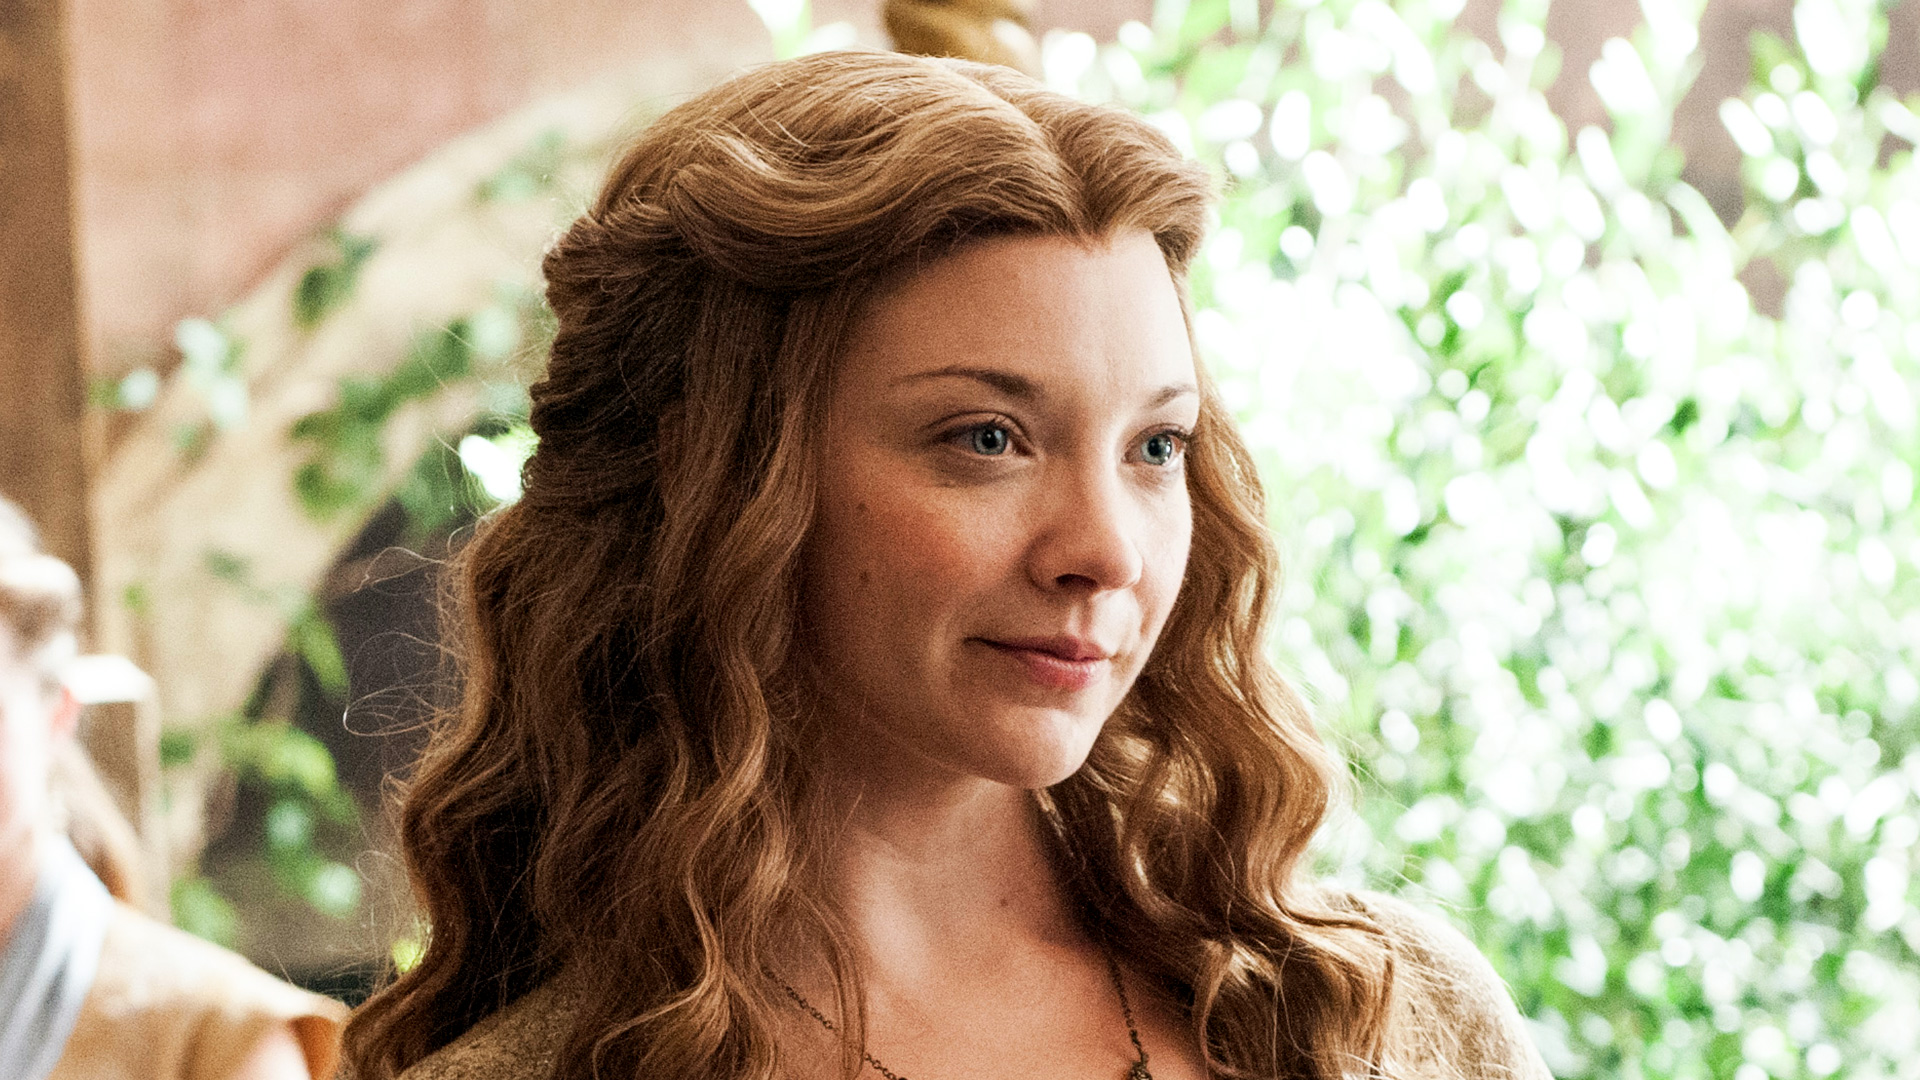 Actress Natalie Dormer says violence in Superman is worse than Game of Thrones - Blastr